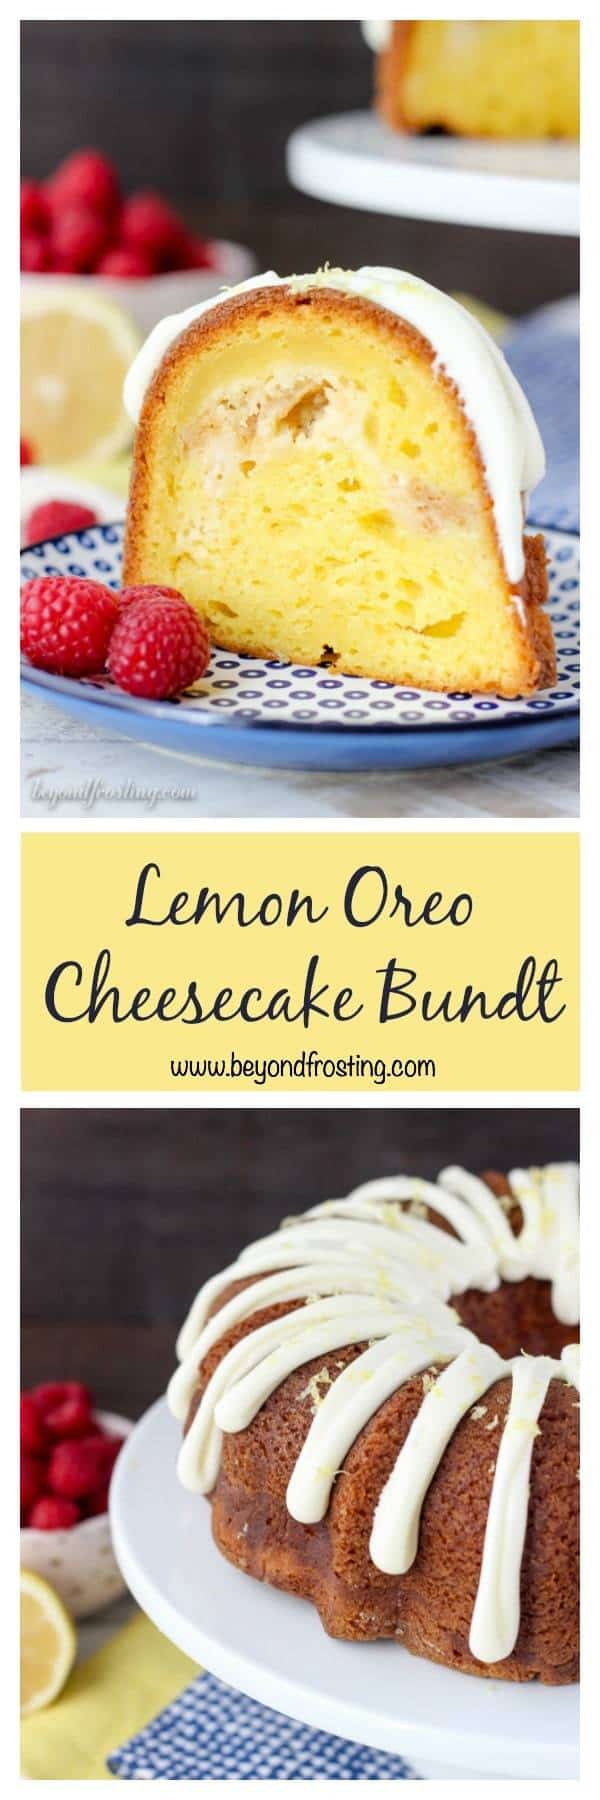 Beyond Frosting Oreo Chocolate Cheesecake Bundt Cake